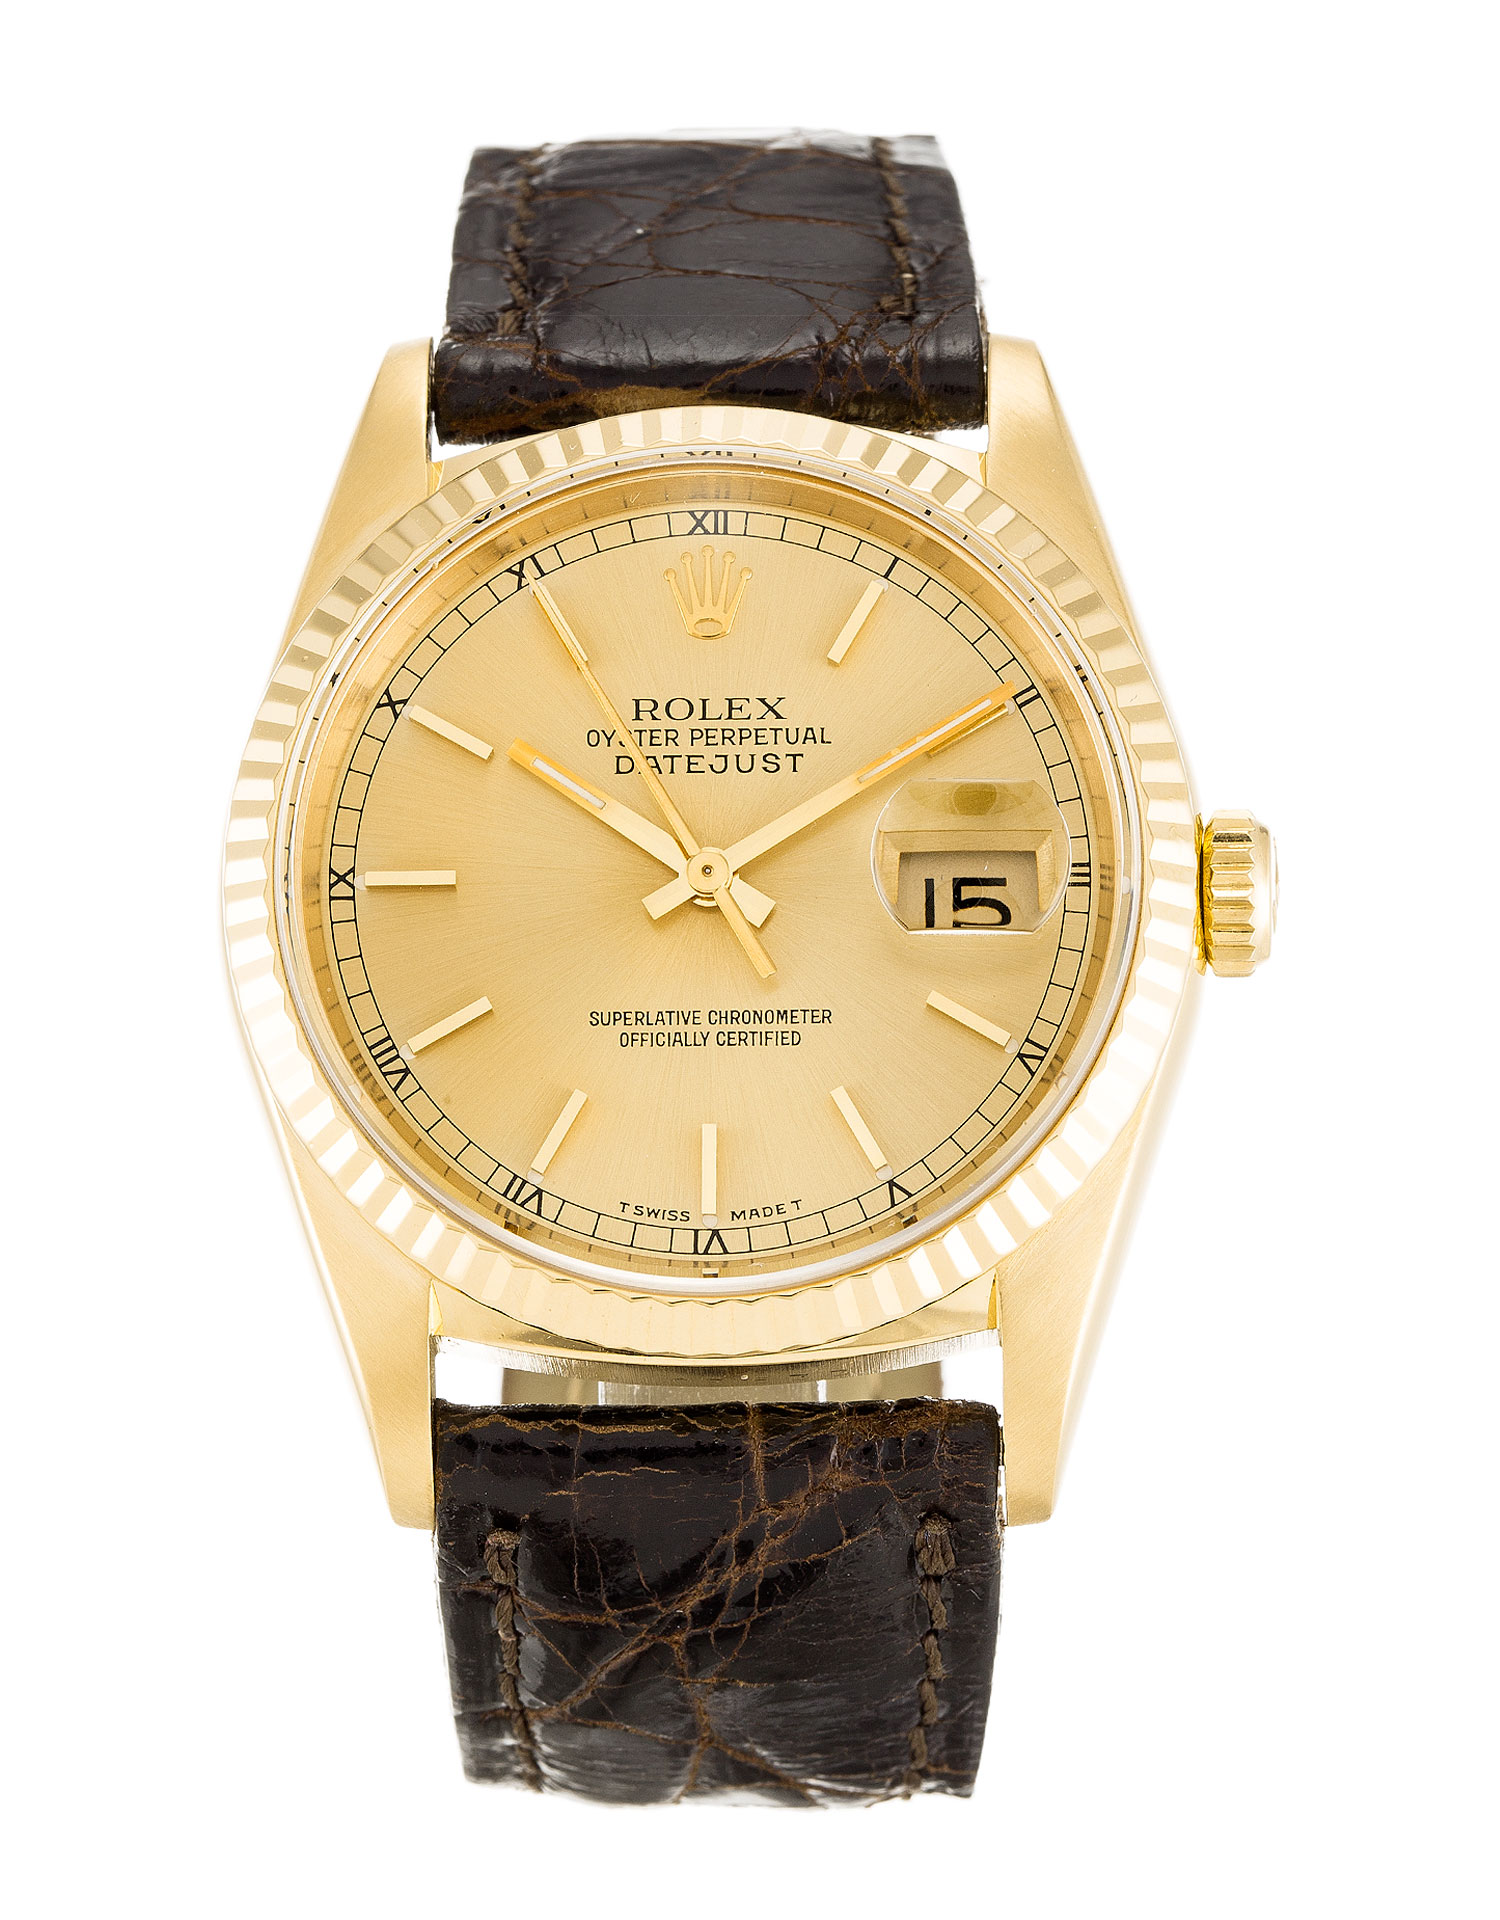 Rolex Datejust 16238 Mens 36 Mm Yellow Gold Case Automatic Movement – iapac.to